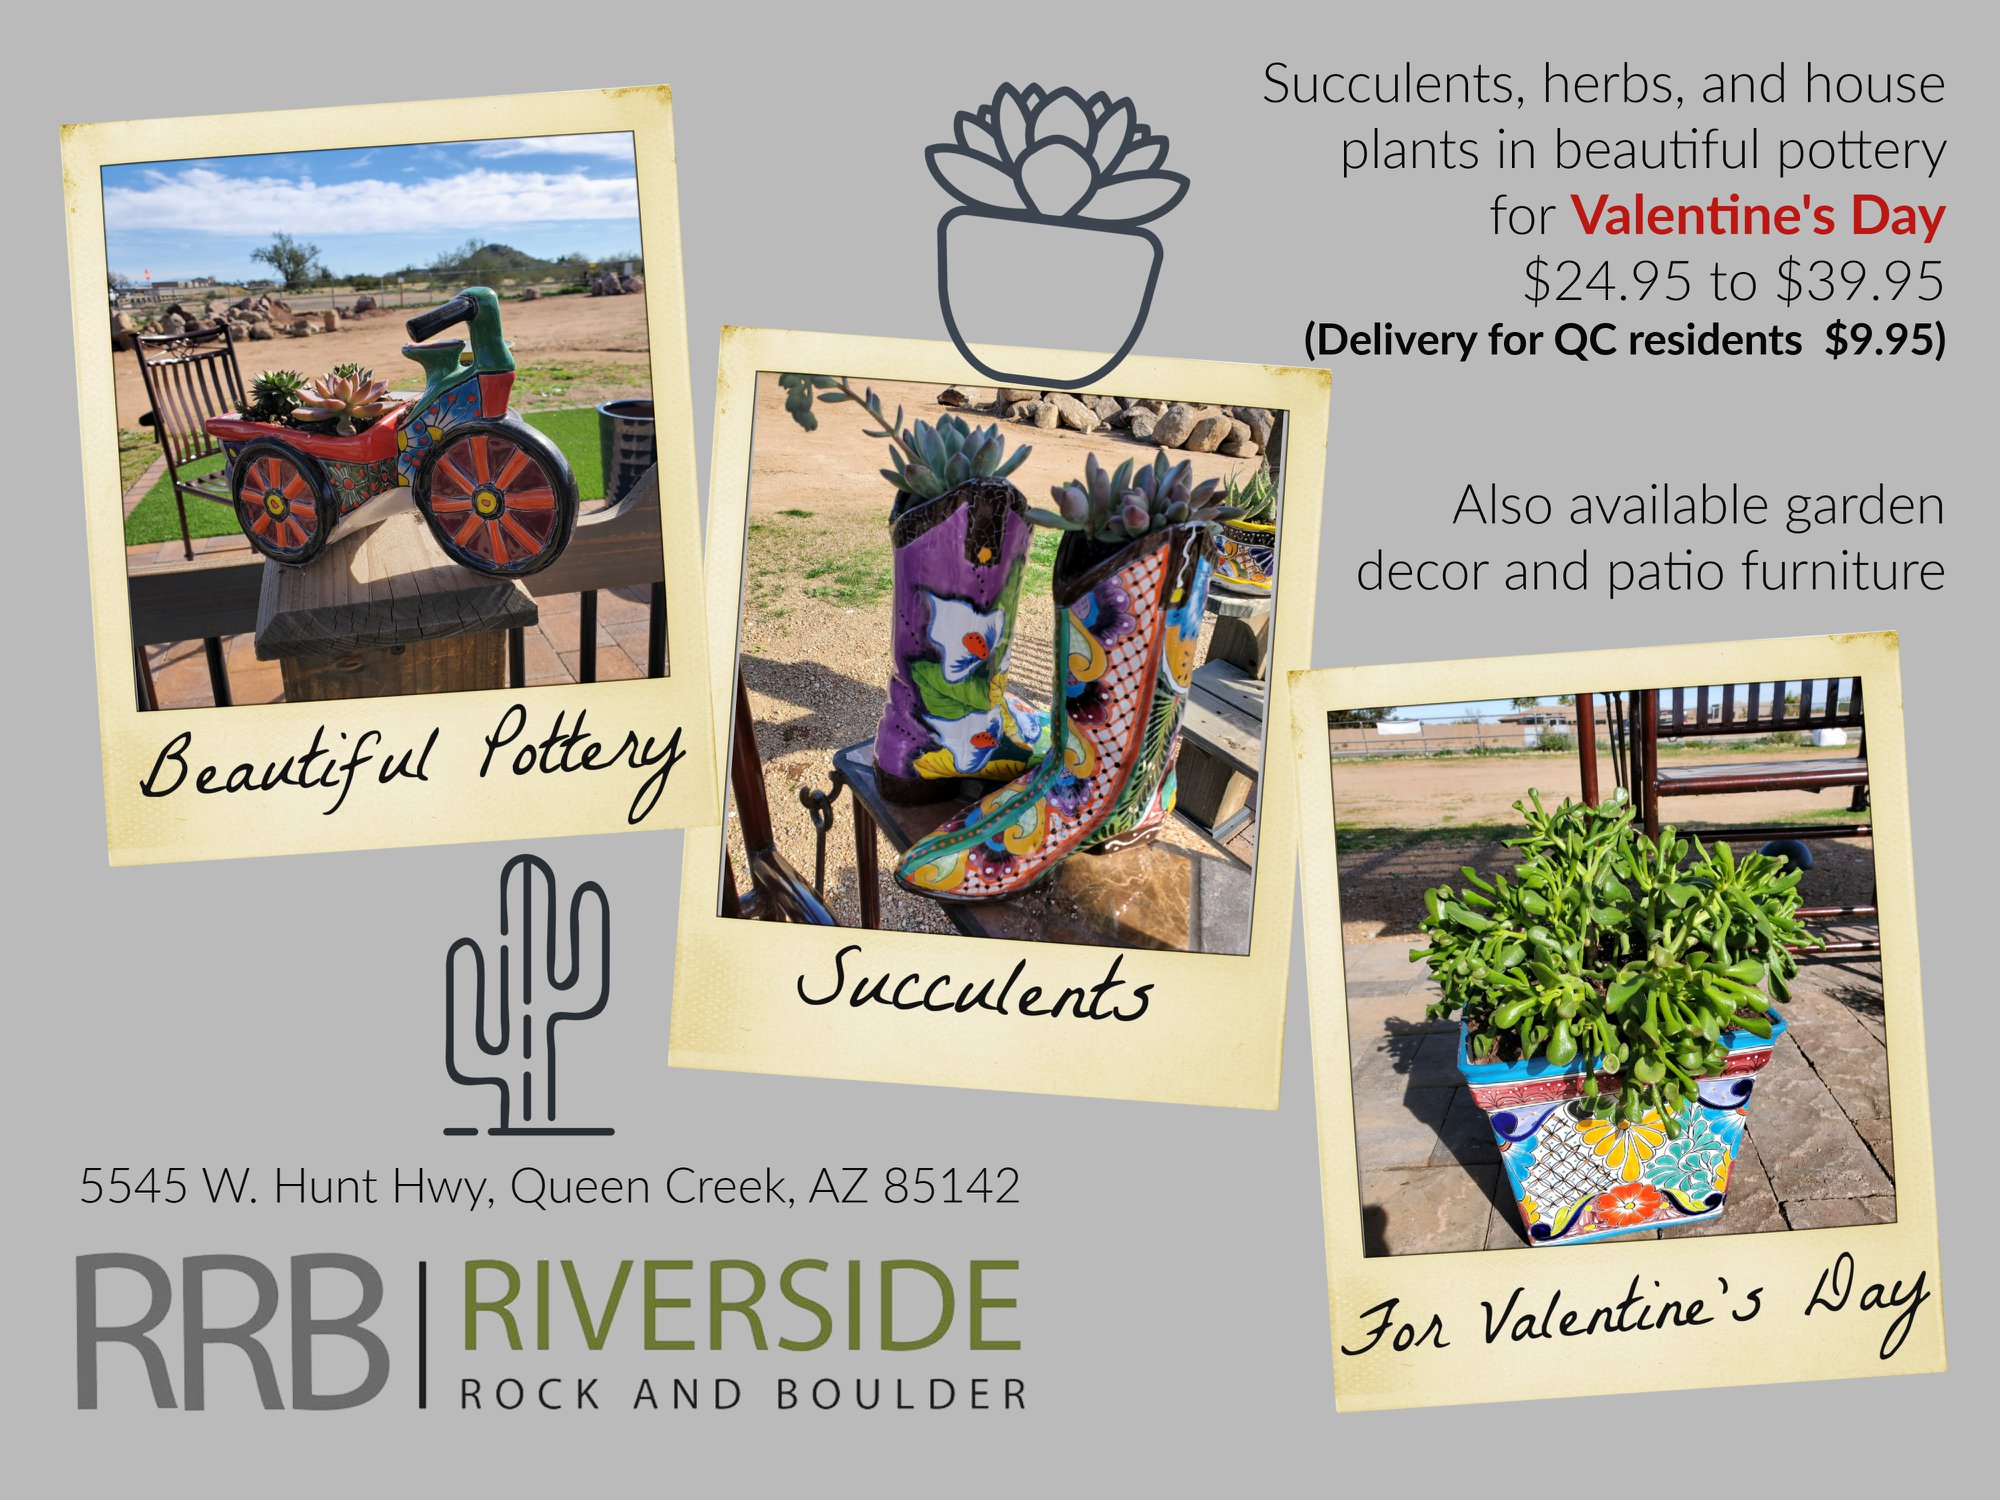 Plant delivery in Queen Creek